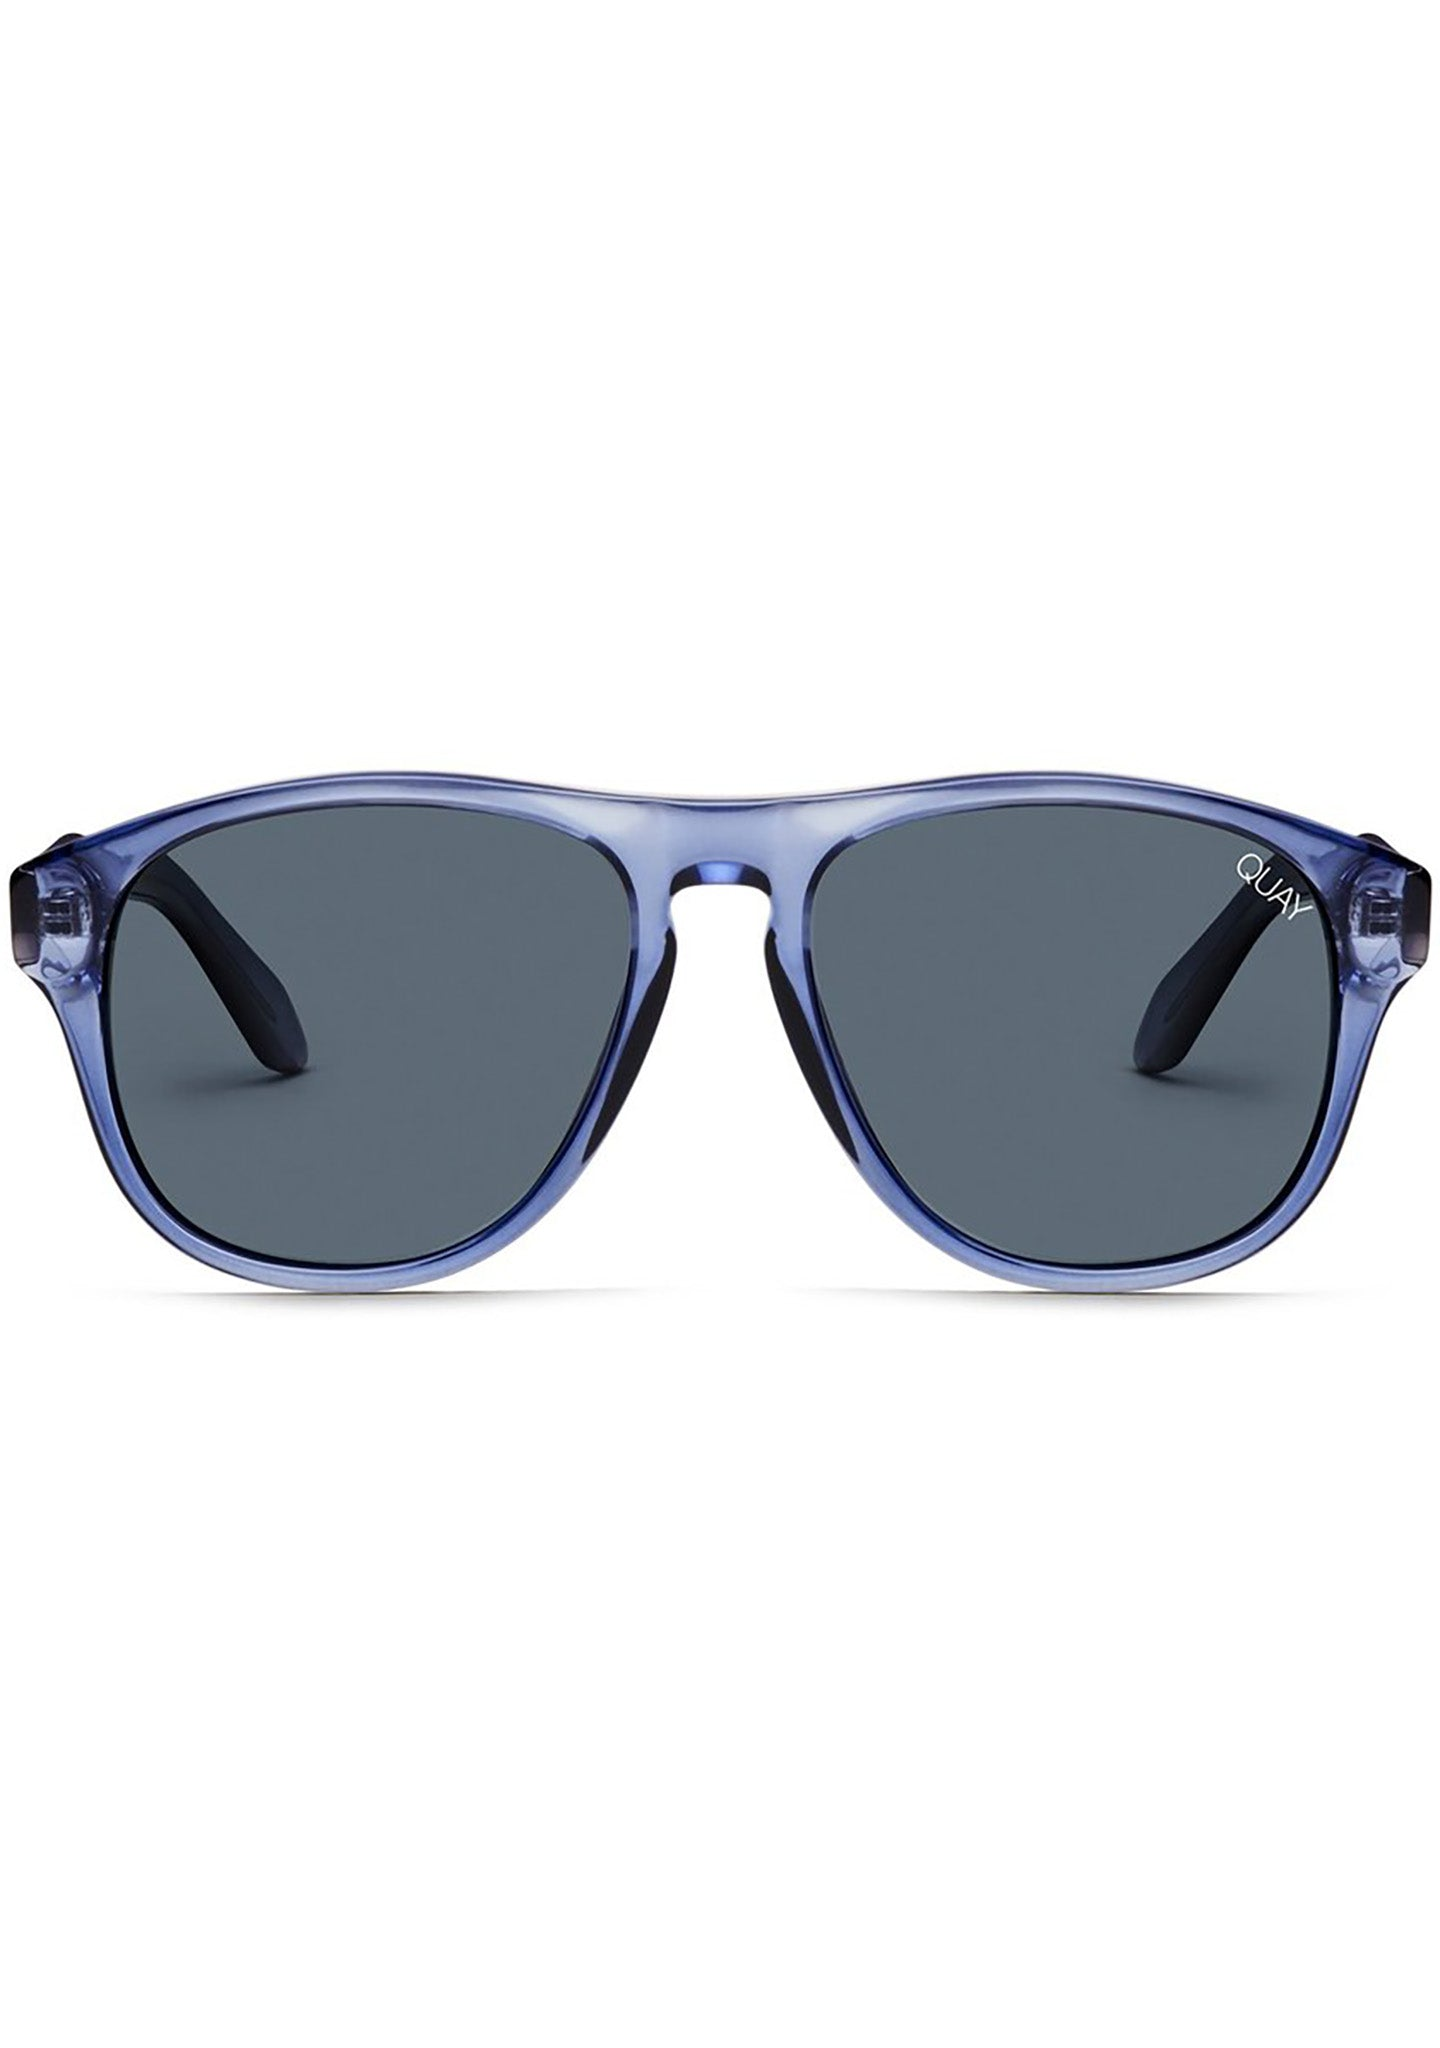 Lost Weekend Sunglasses in Blue/Navy